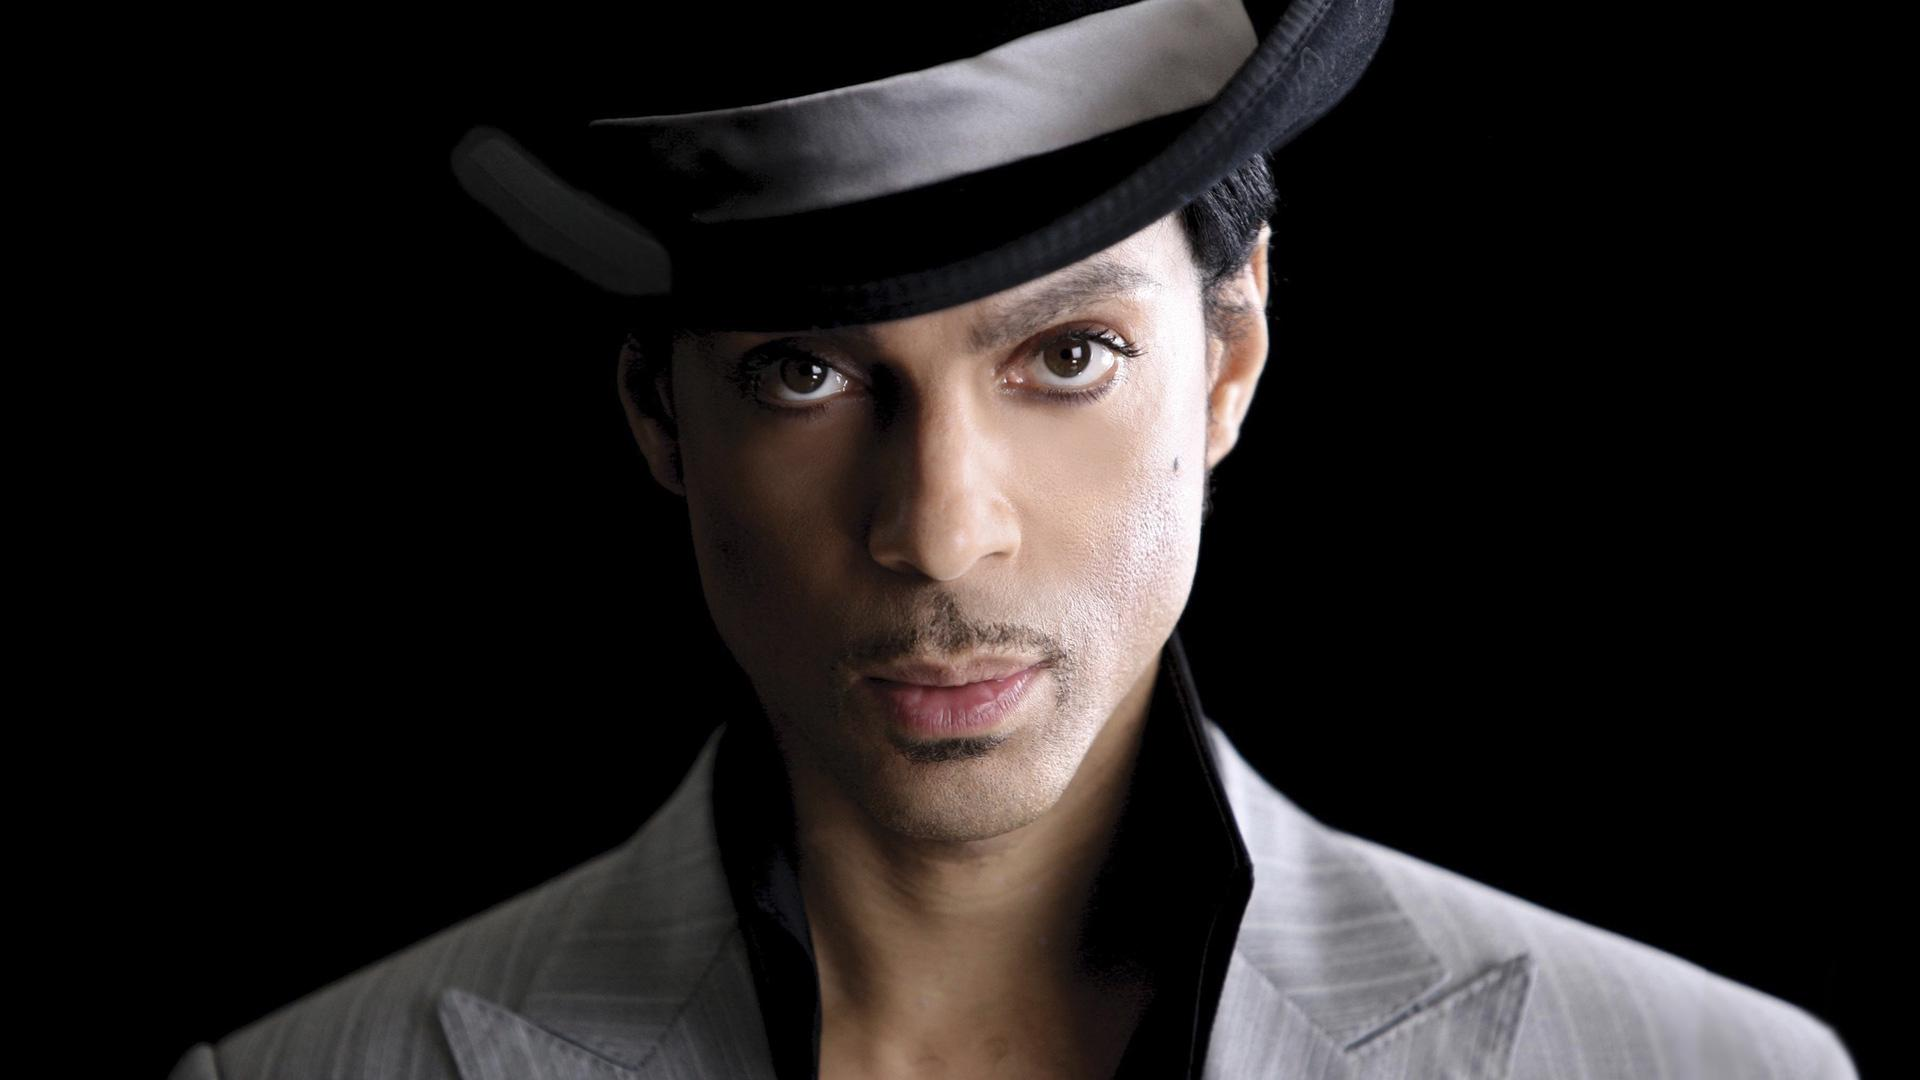 Download wallpapers 1920x1080 prince, singer, rhythm and blues